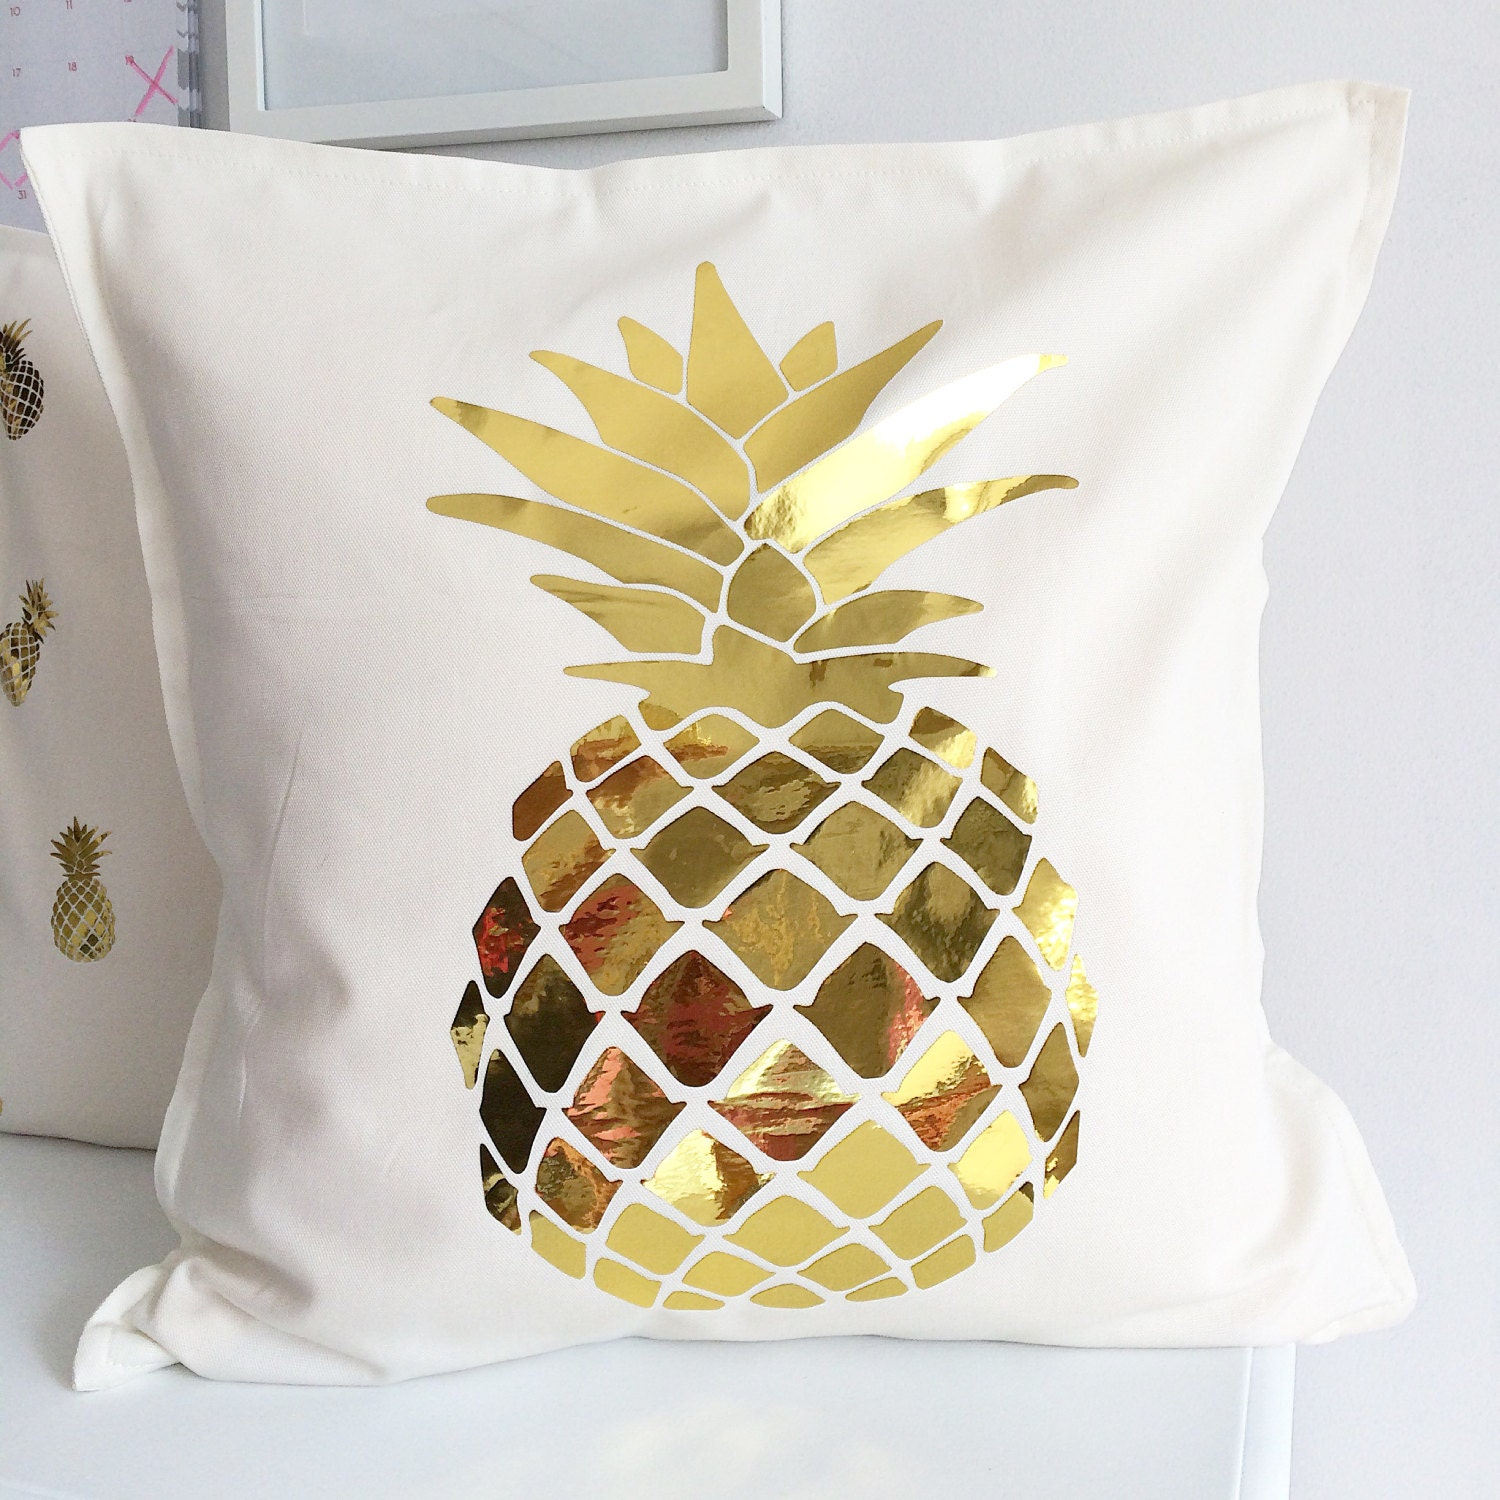 pineapplepillow life pineapple quotable pillow product